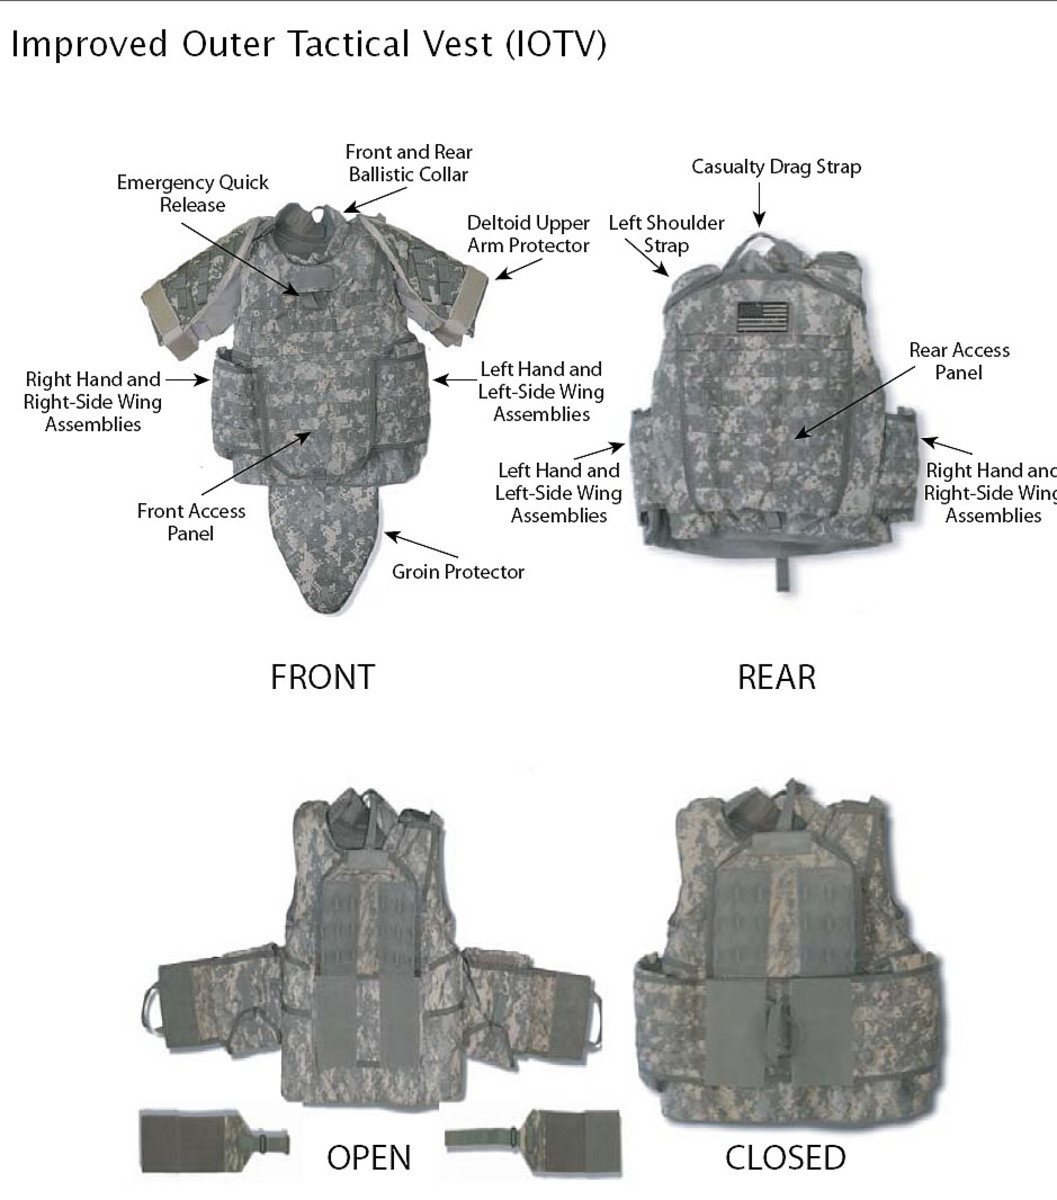 Latest version of Interceptor Body Armor, IOTV, note groin and neck protection, as well as a built-in grab strap behind the neck so your buddies can drag you out of danger